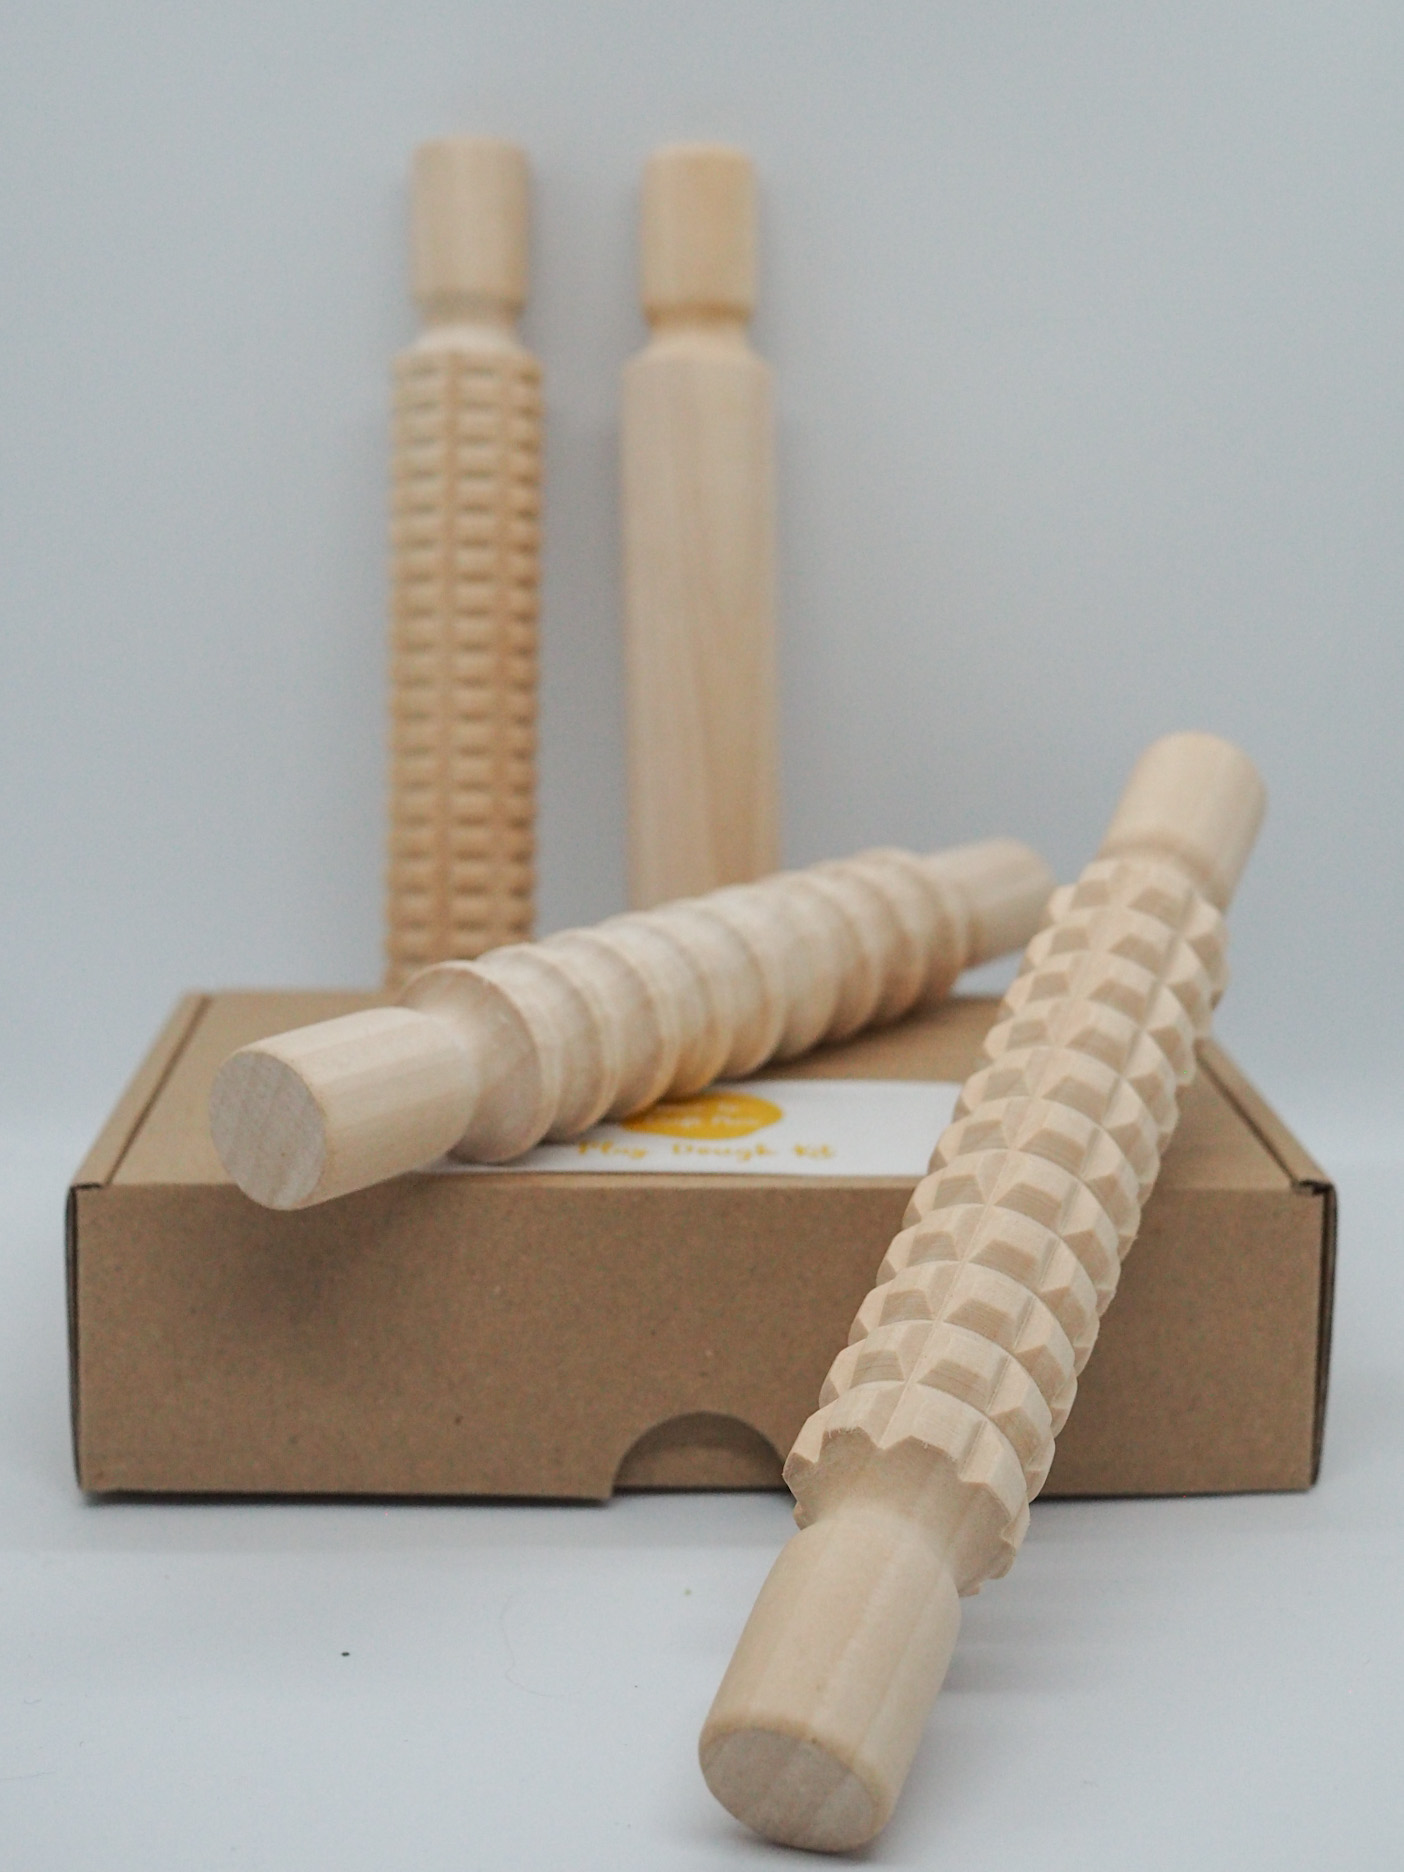 Wooden Rolling Pins for sensory play